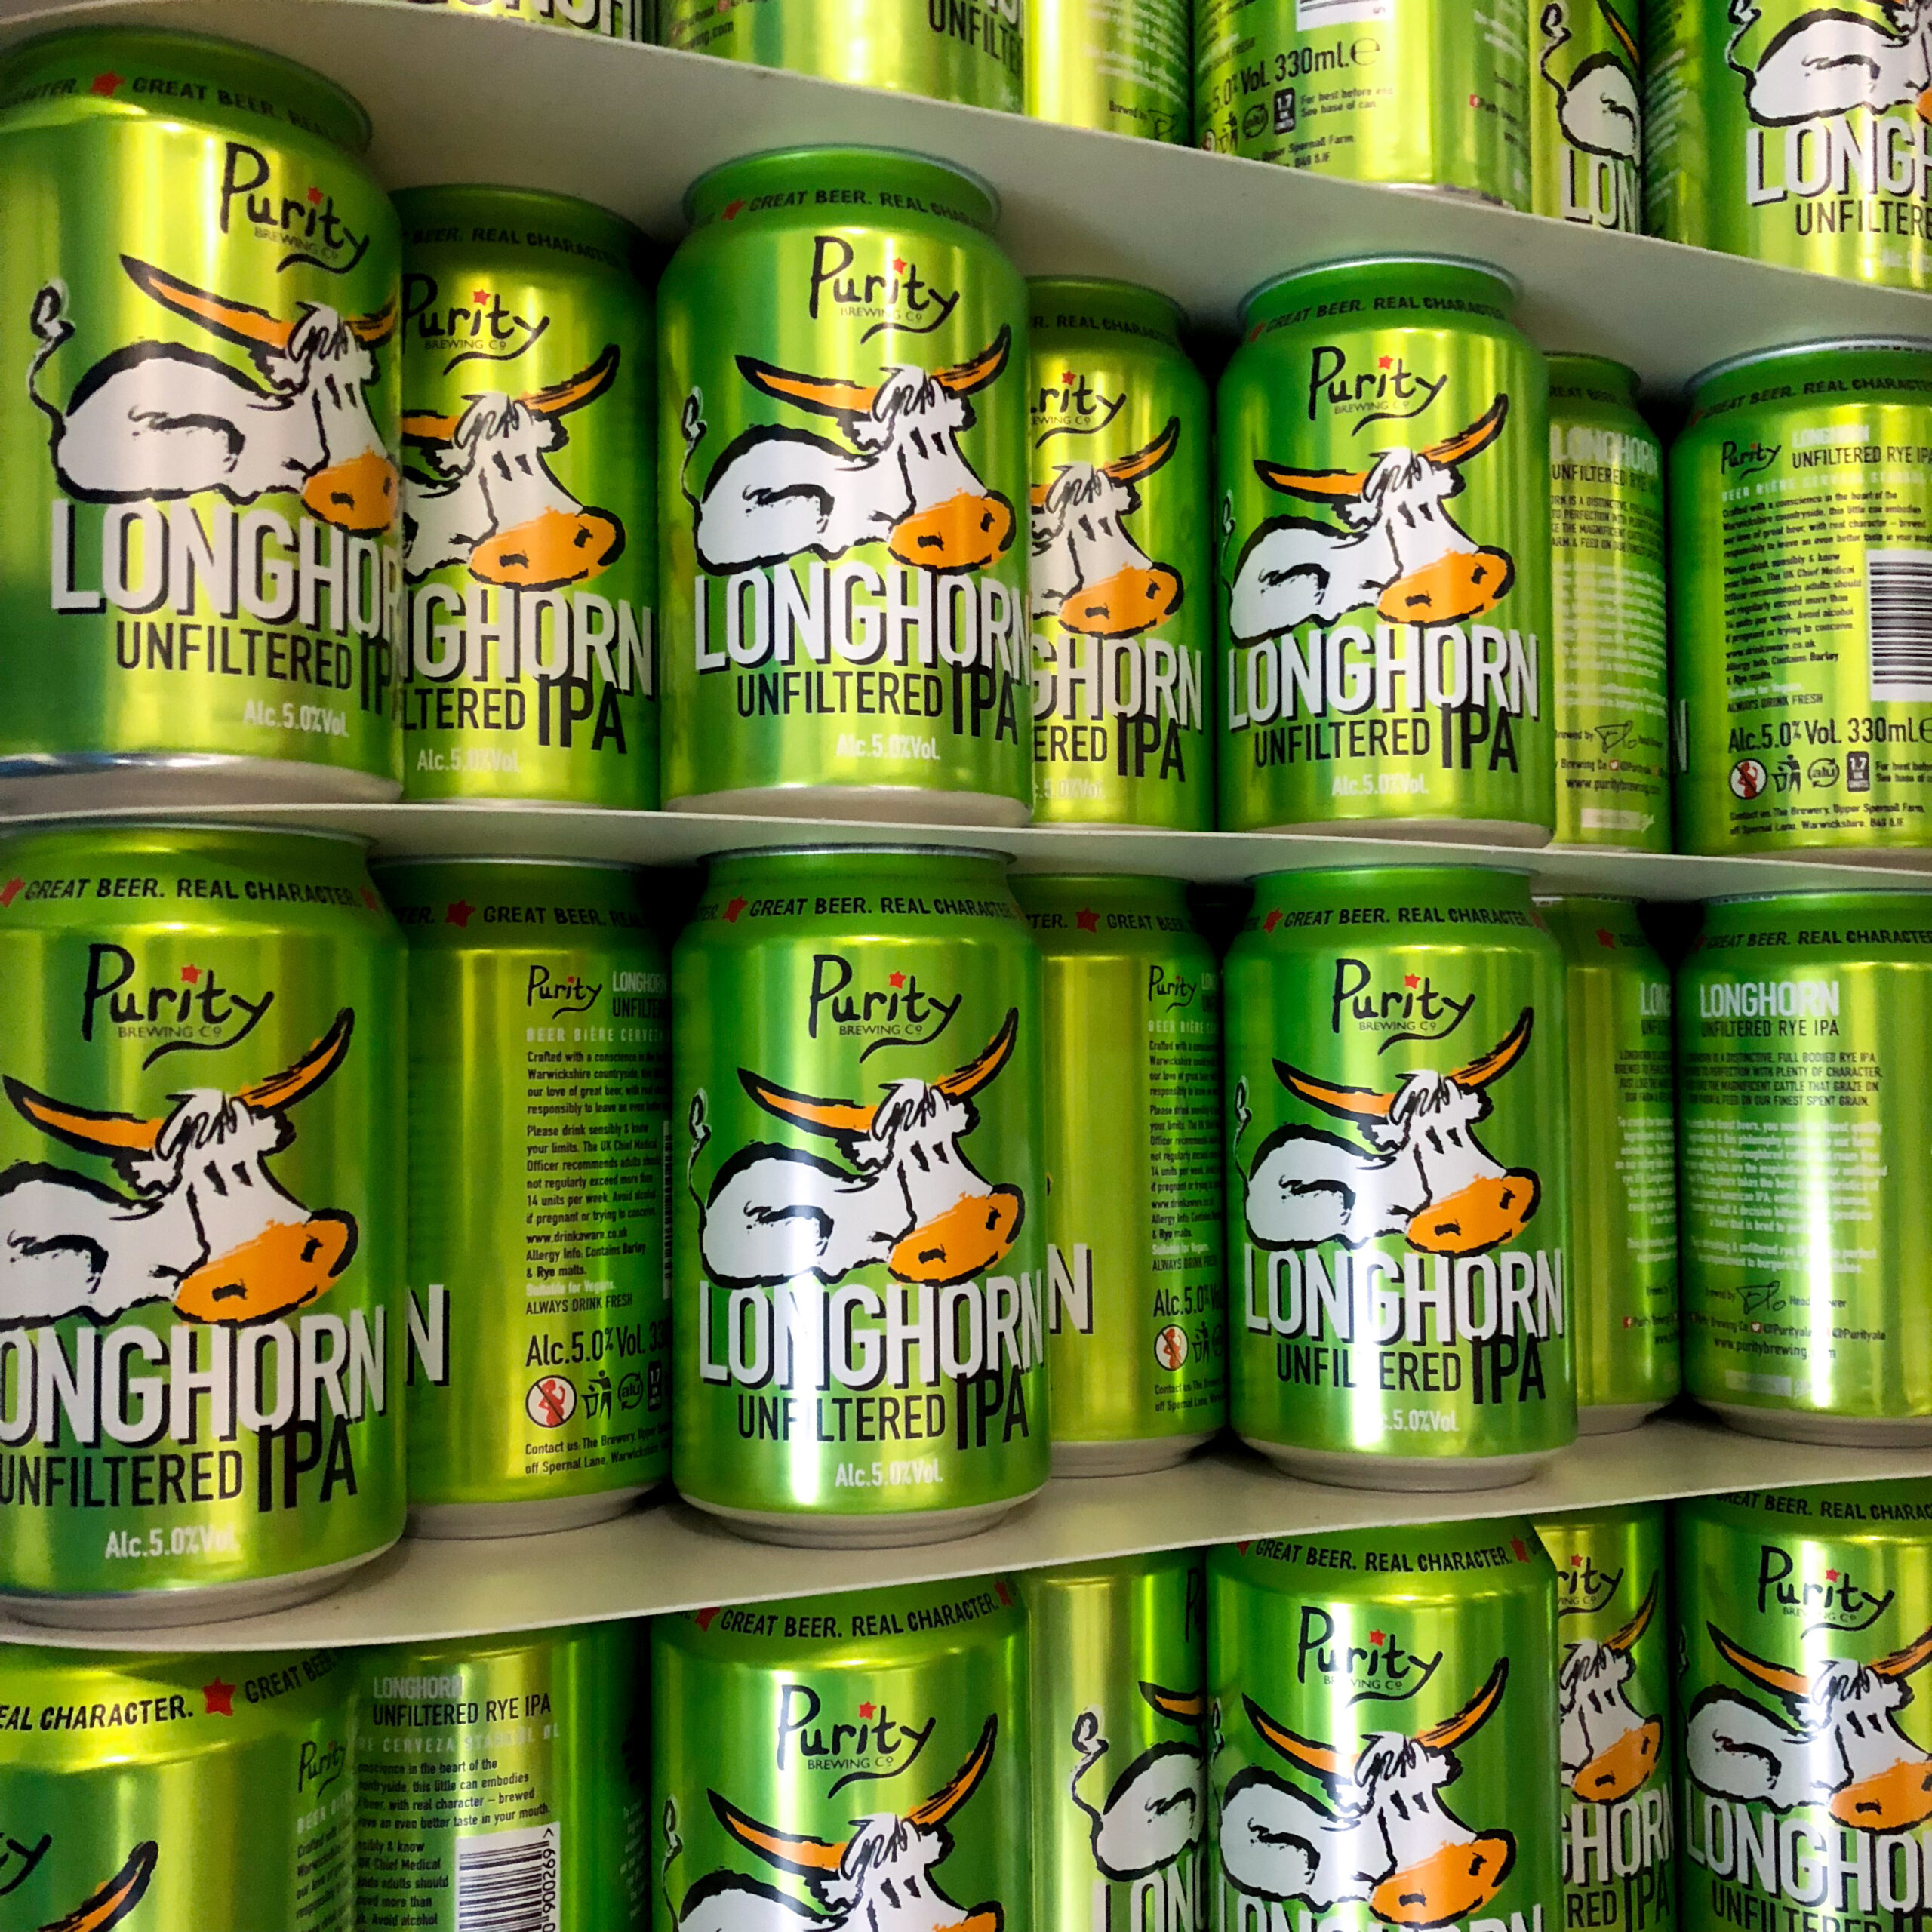 green-cans-of-purity-brewing-new-Longhorn-ipa